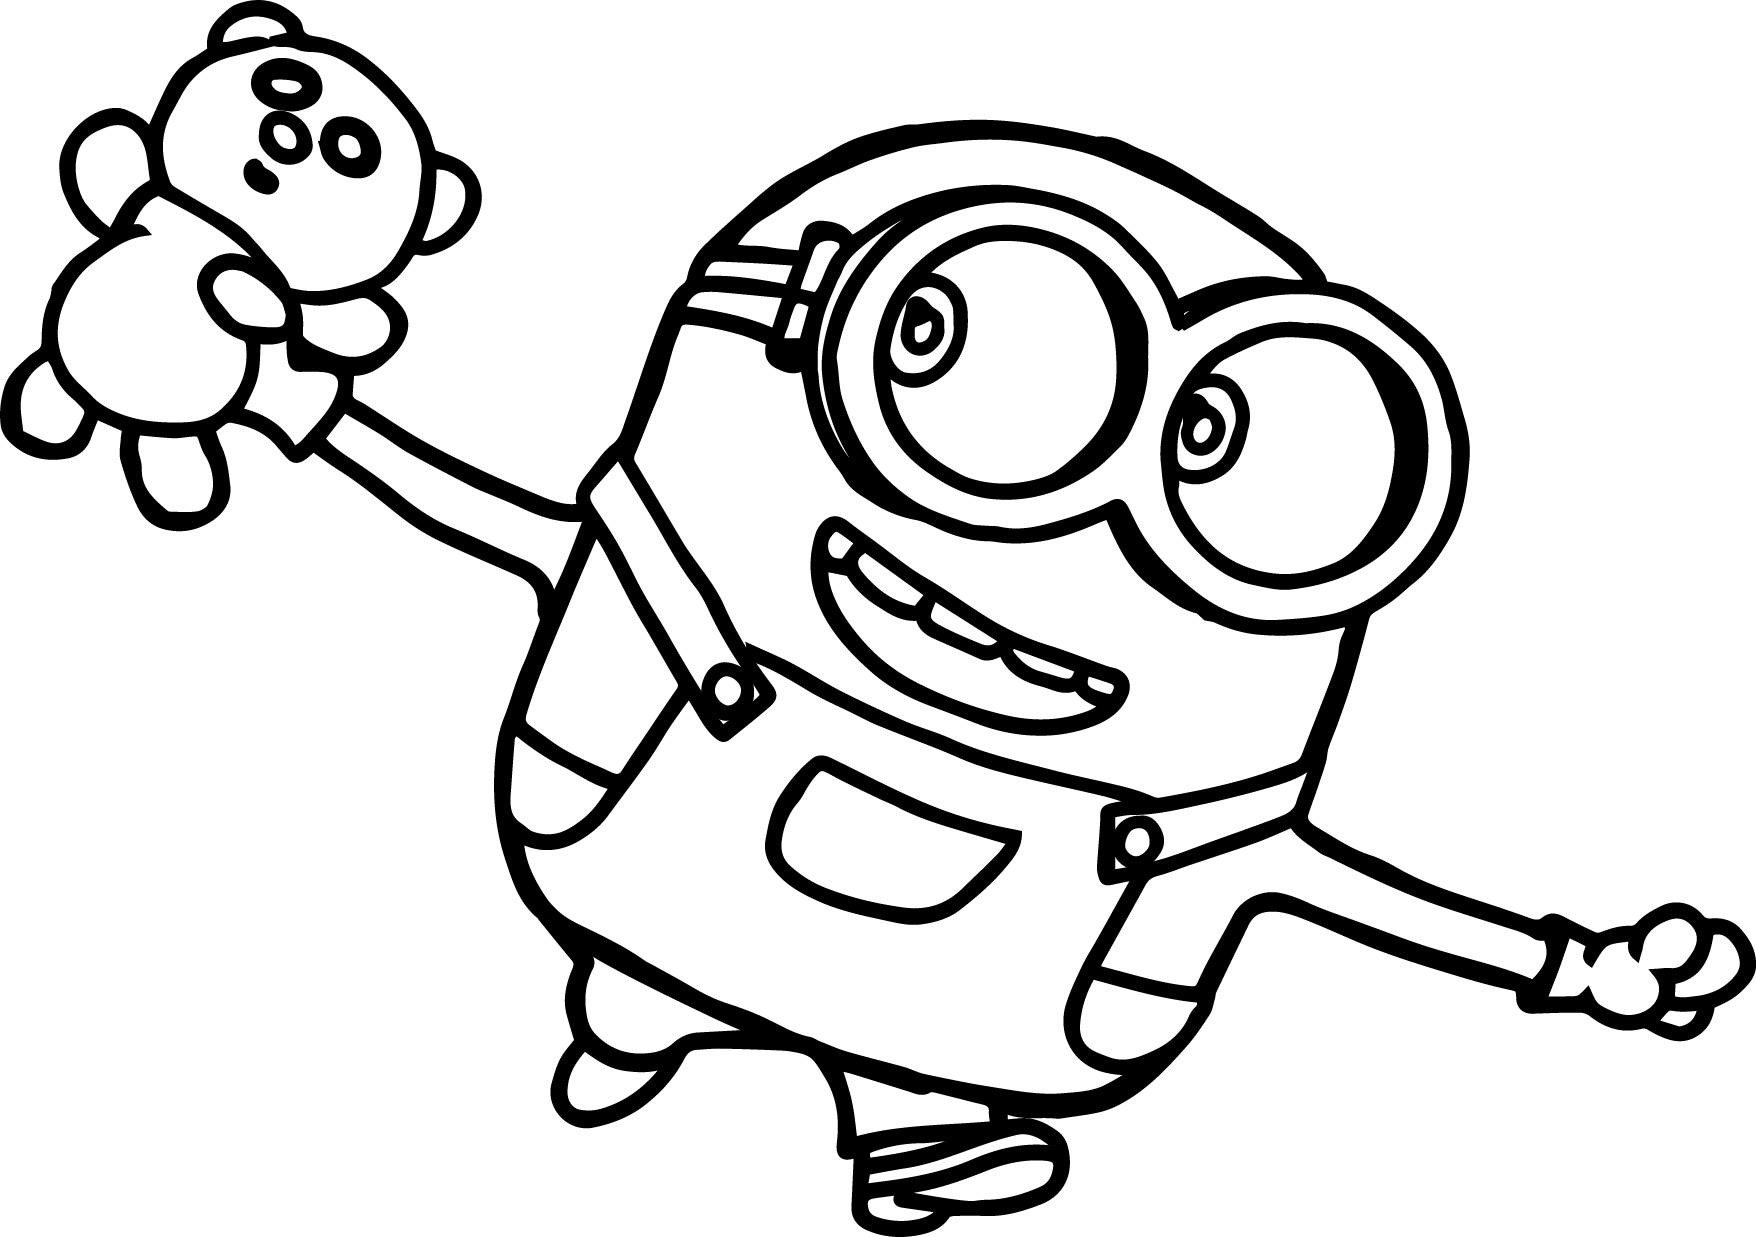 Bob-Minions-Movie-2015-Coloring-Page